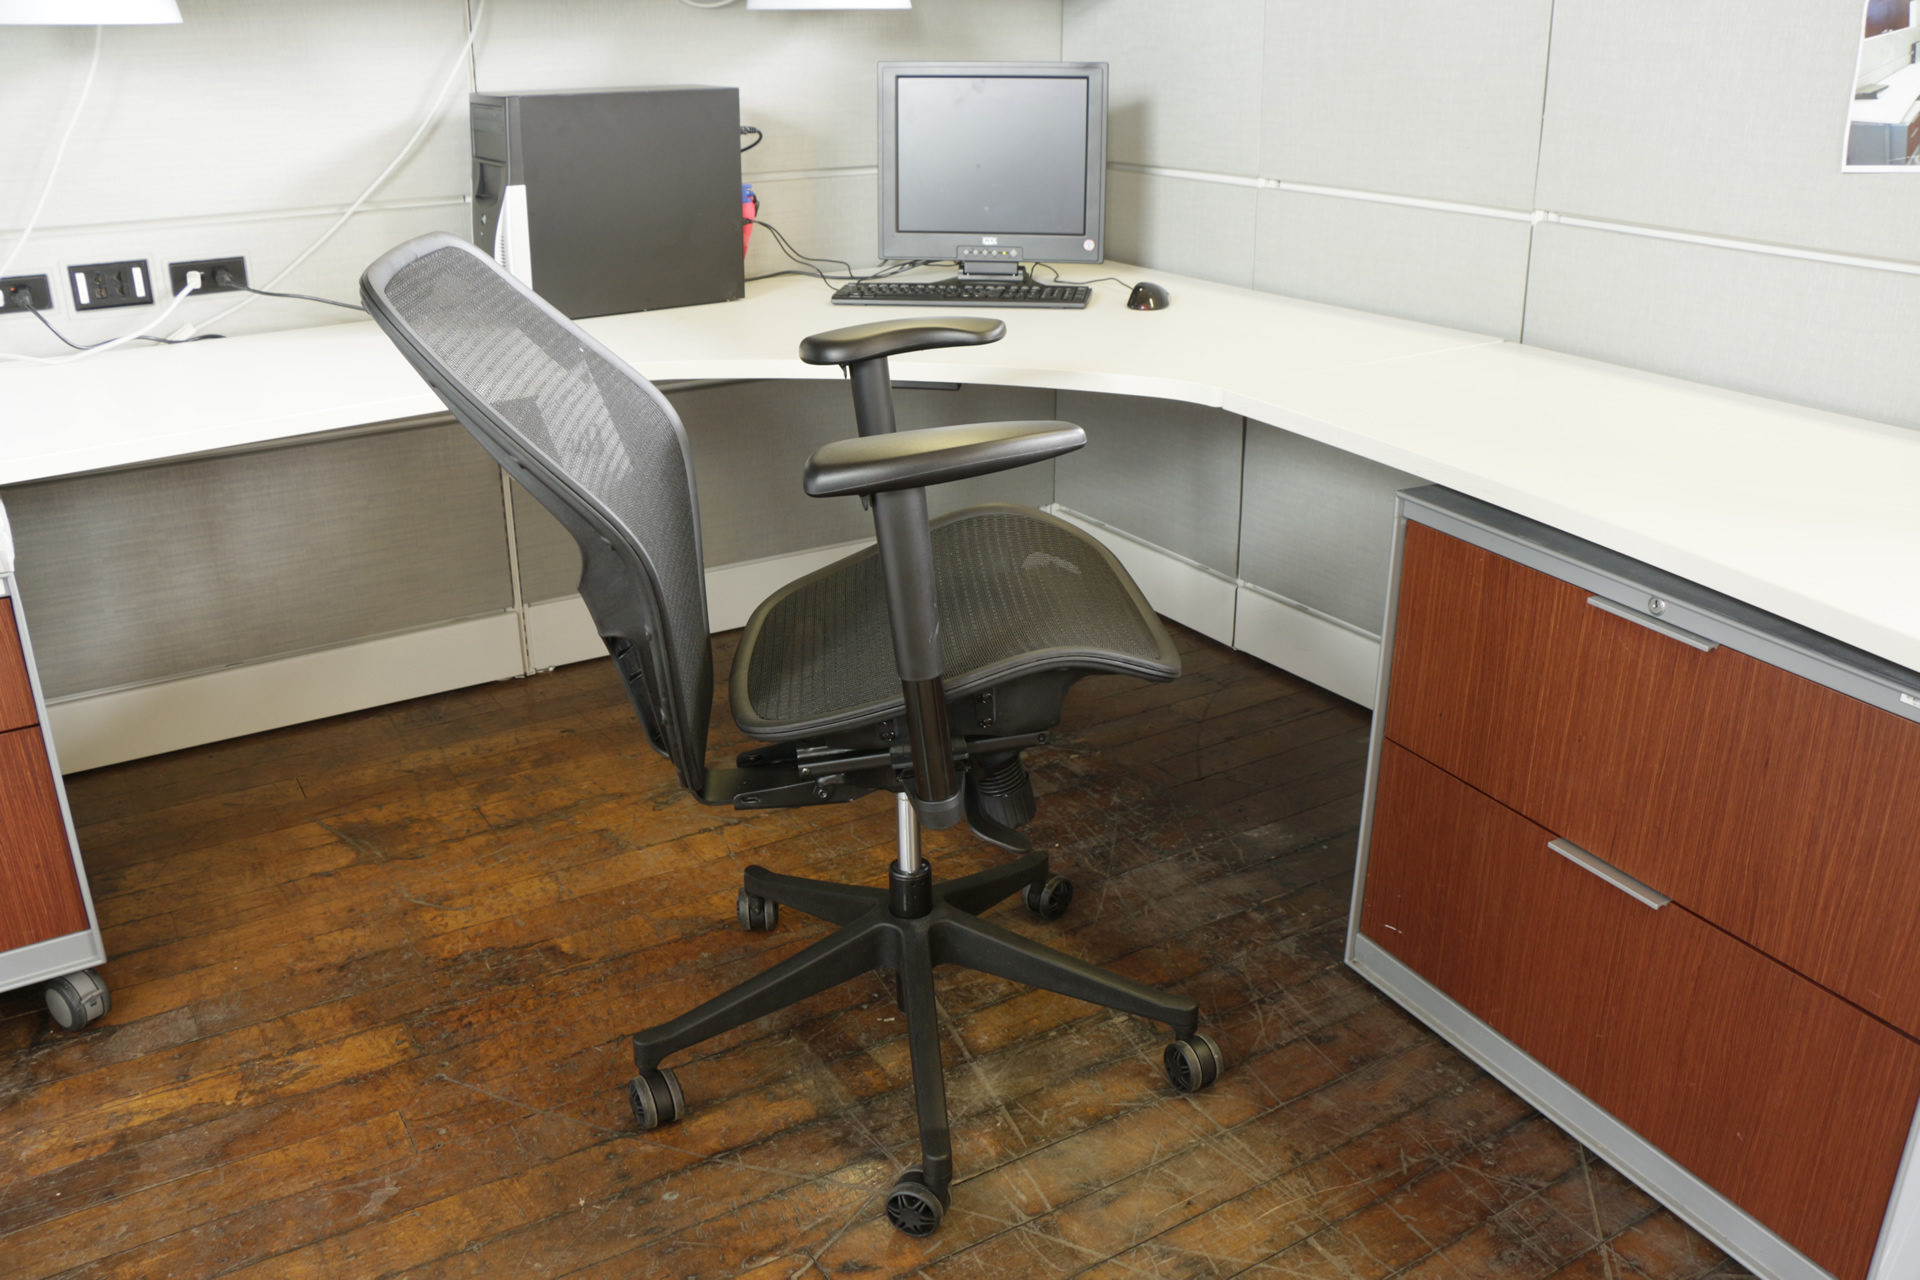 peartreeofficefurniture_peartreeofficefurniture_mg_3390.jpg